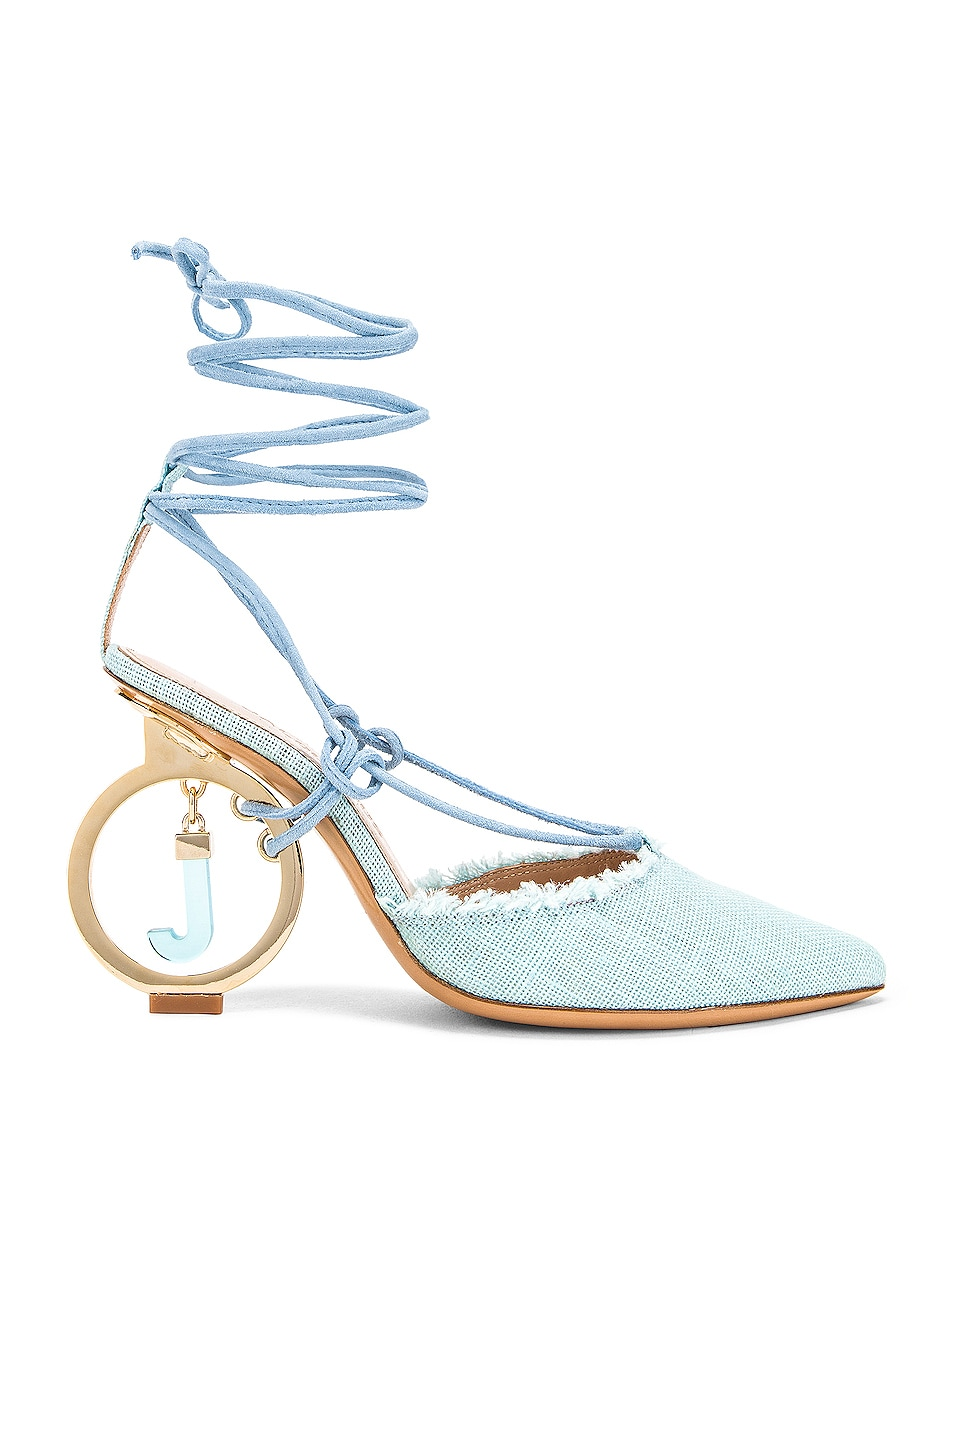 Image 1 of JACQUEMUS Chaussures Riviera Sandal in Light Blue